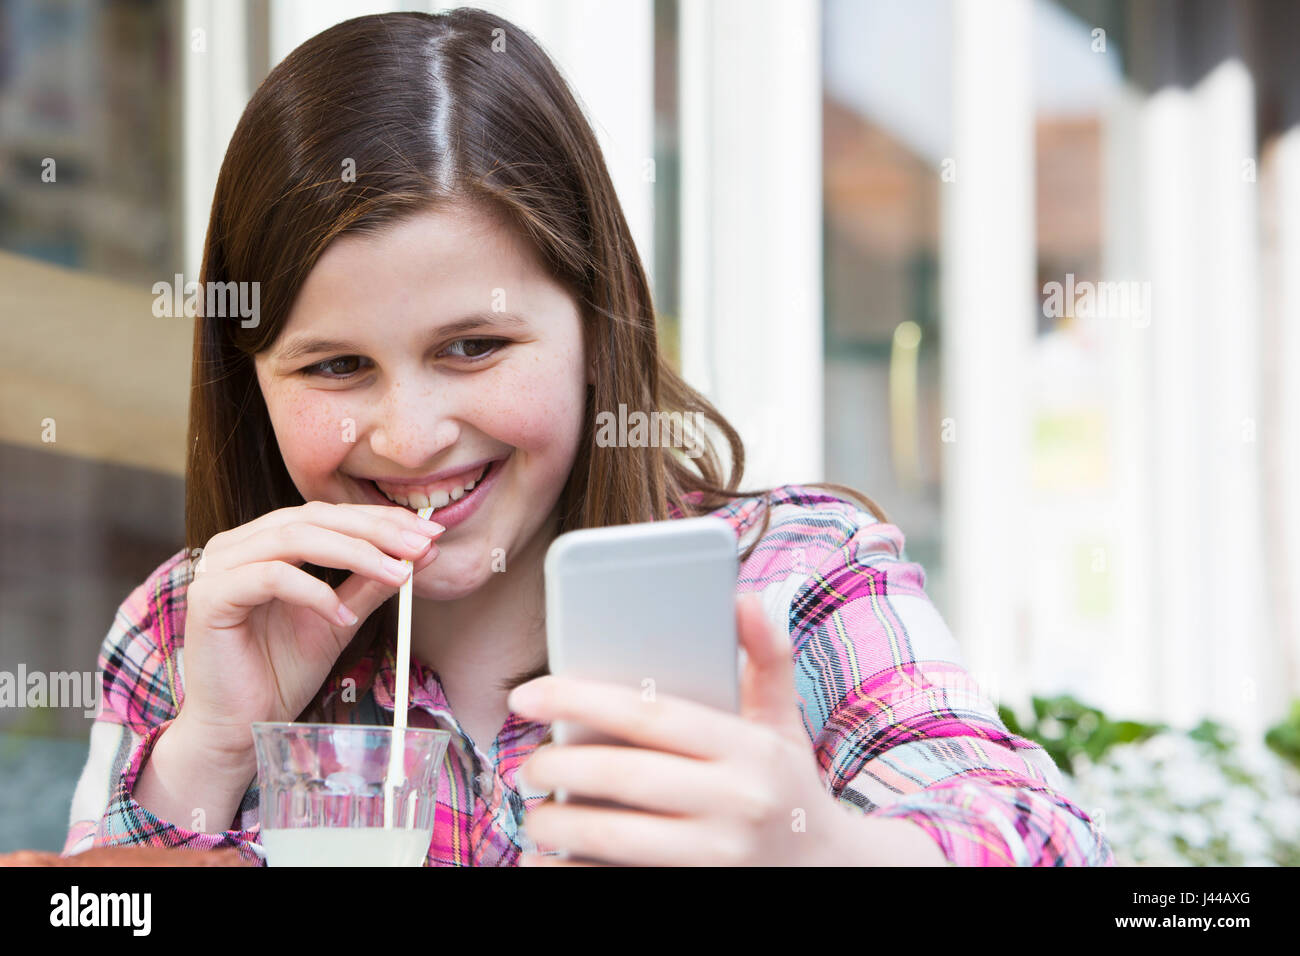 Young Girl At Cafe Reading Text Message On Mobile Phone - Stock Image